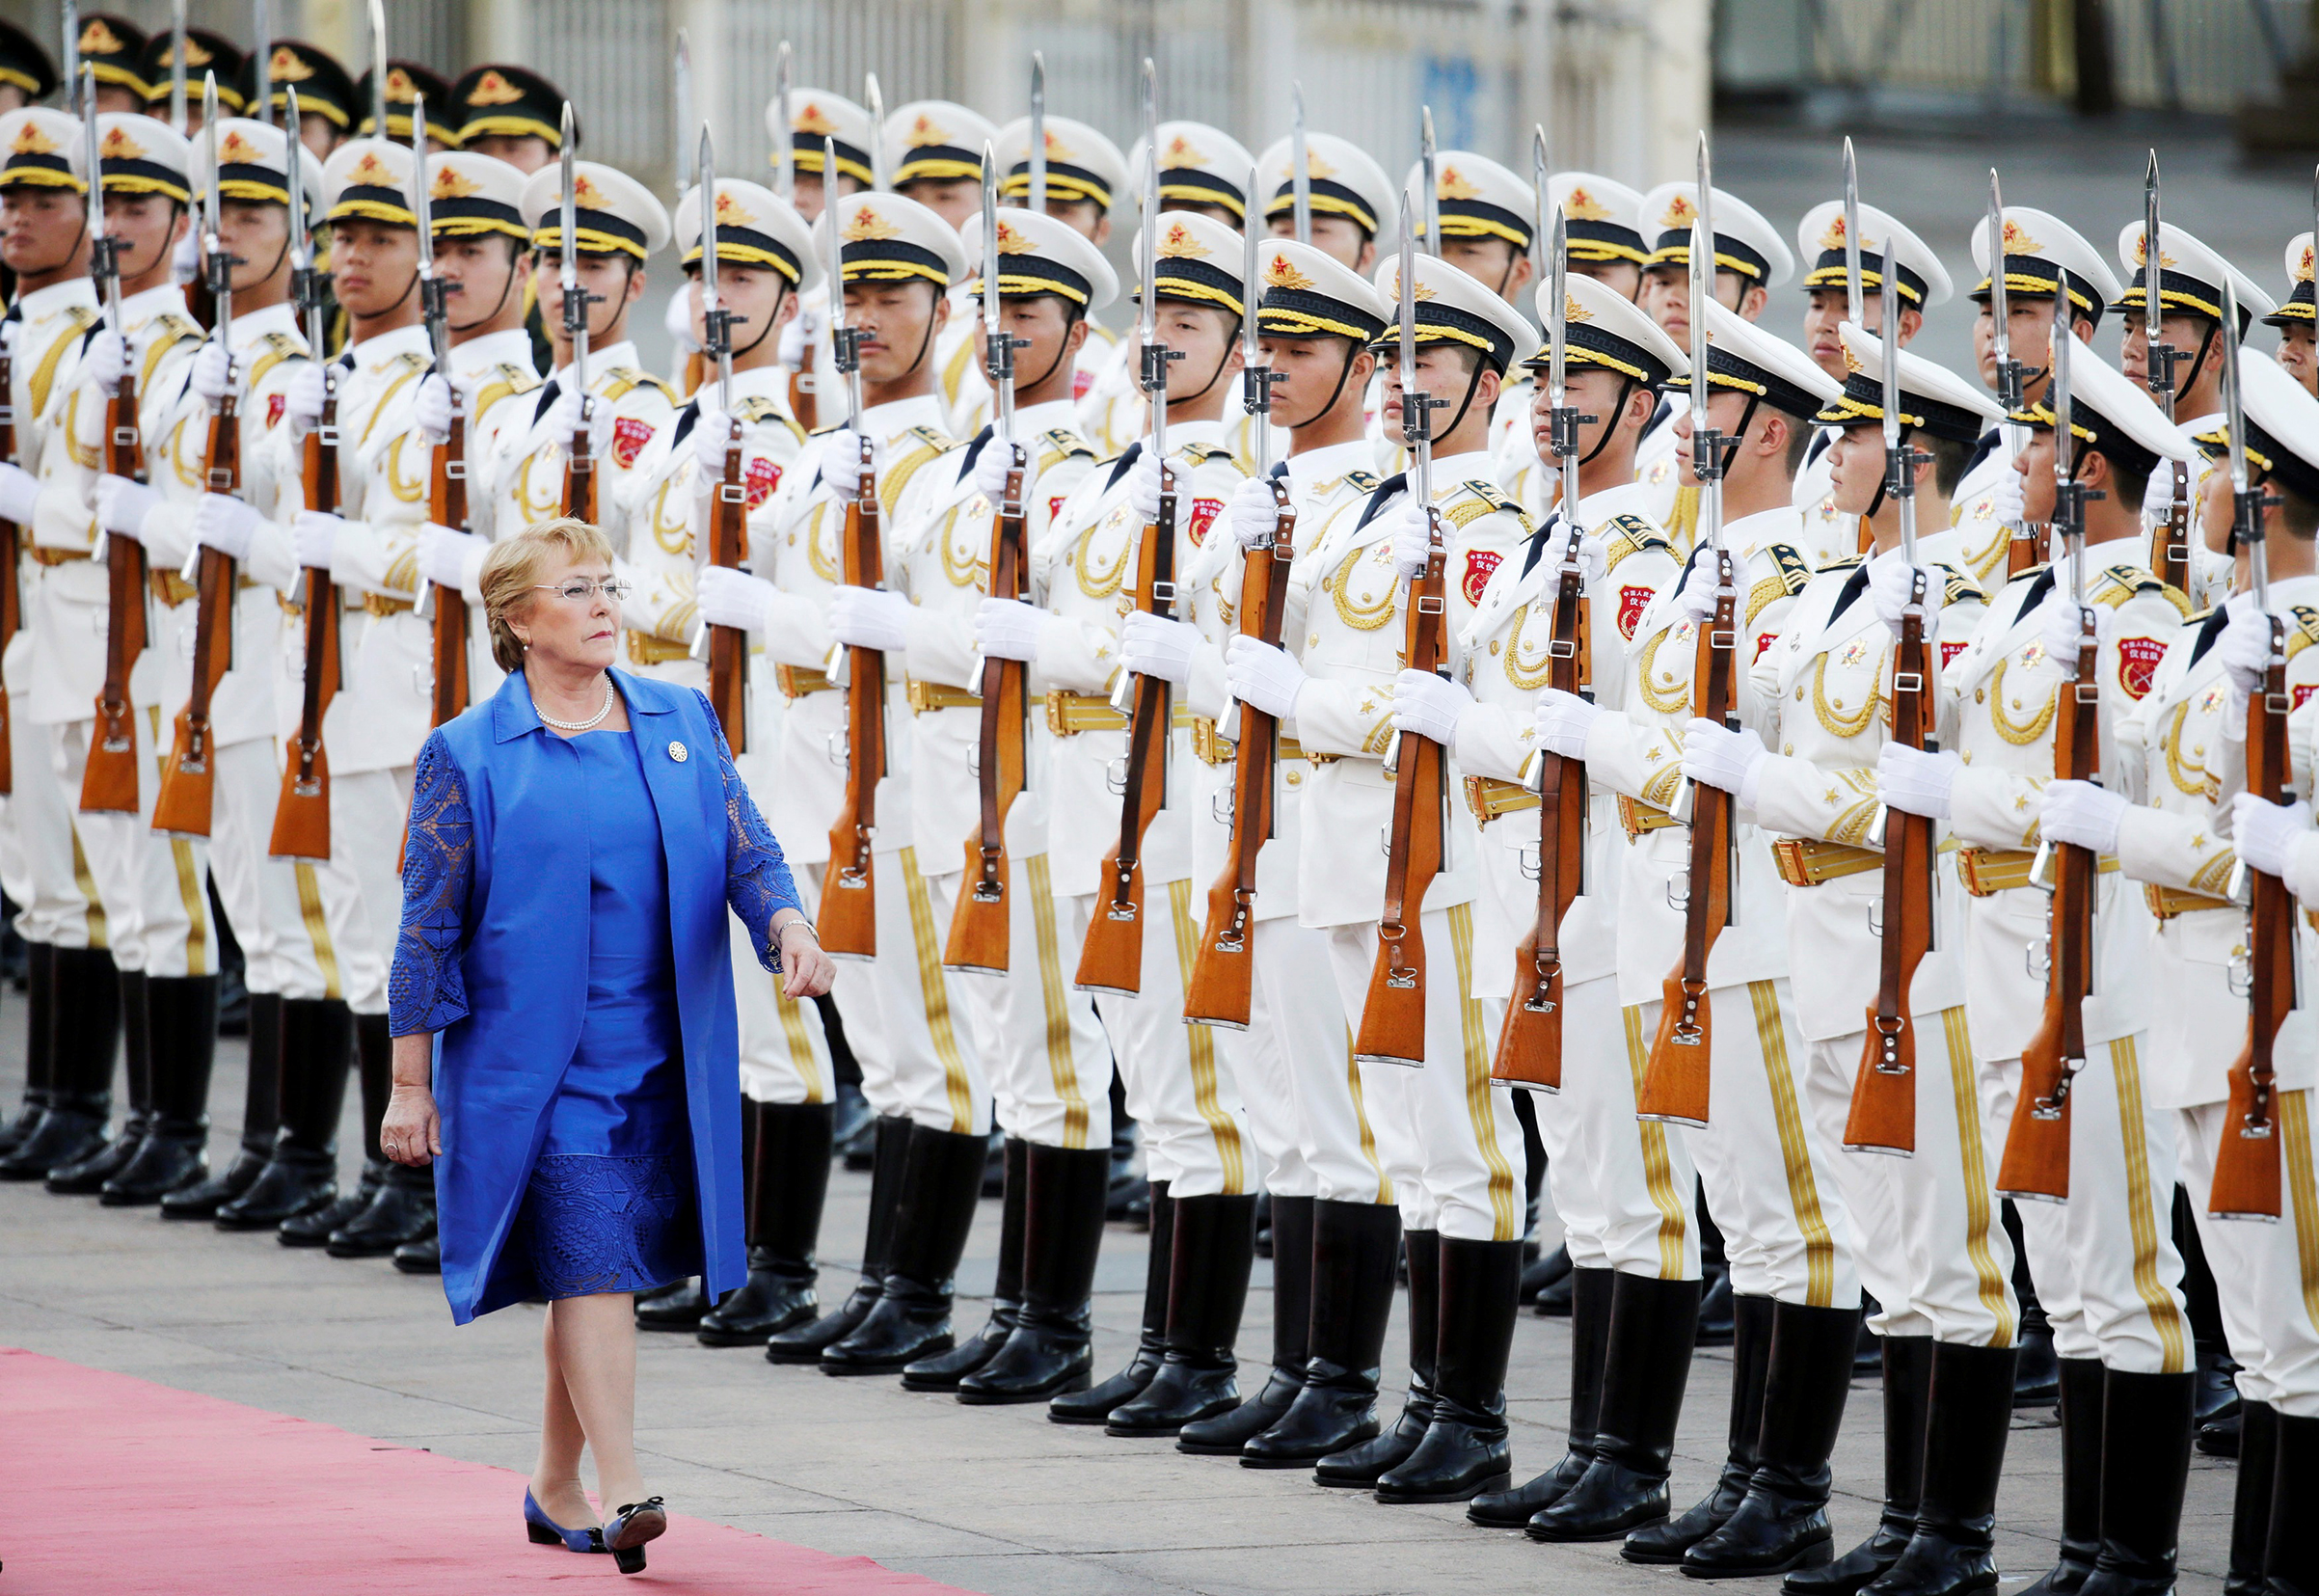 Chilean President Michelle Bachelet reviews the honour guard at a welcoming ceremony ahead of the Belt and Road Forum in Beijing, China May 13, 2017.